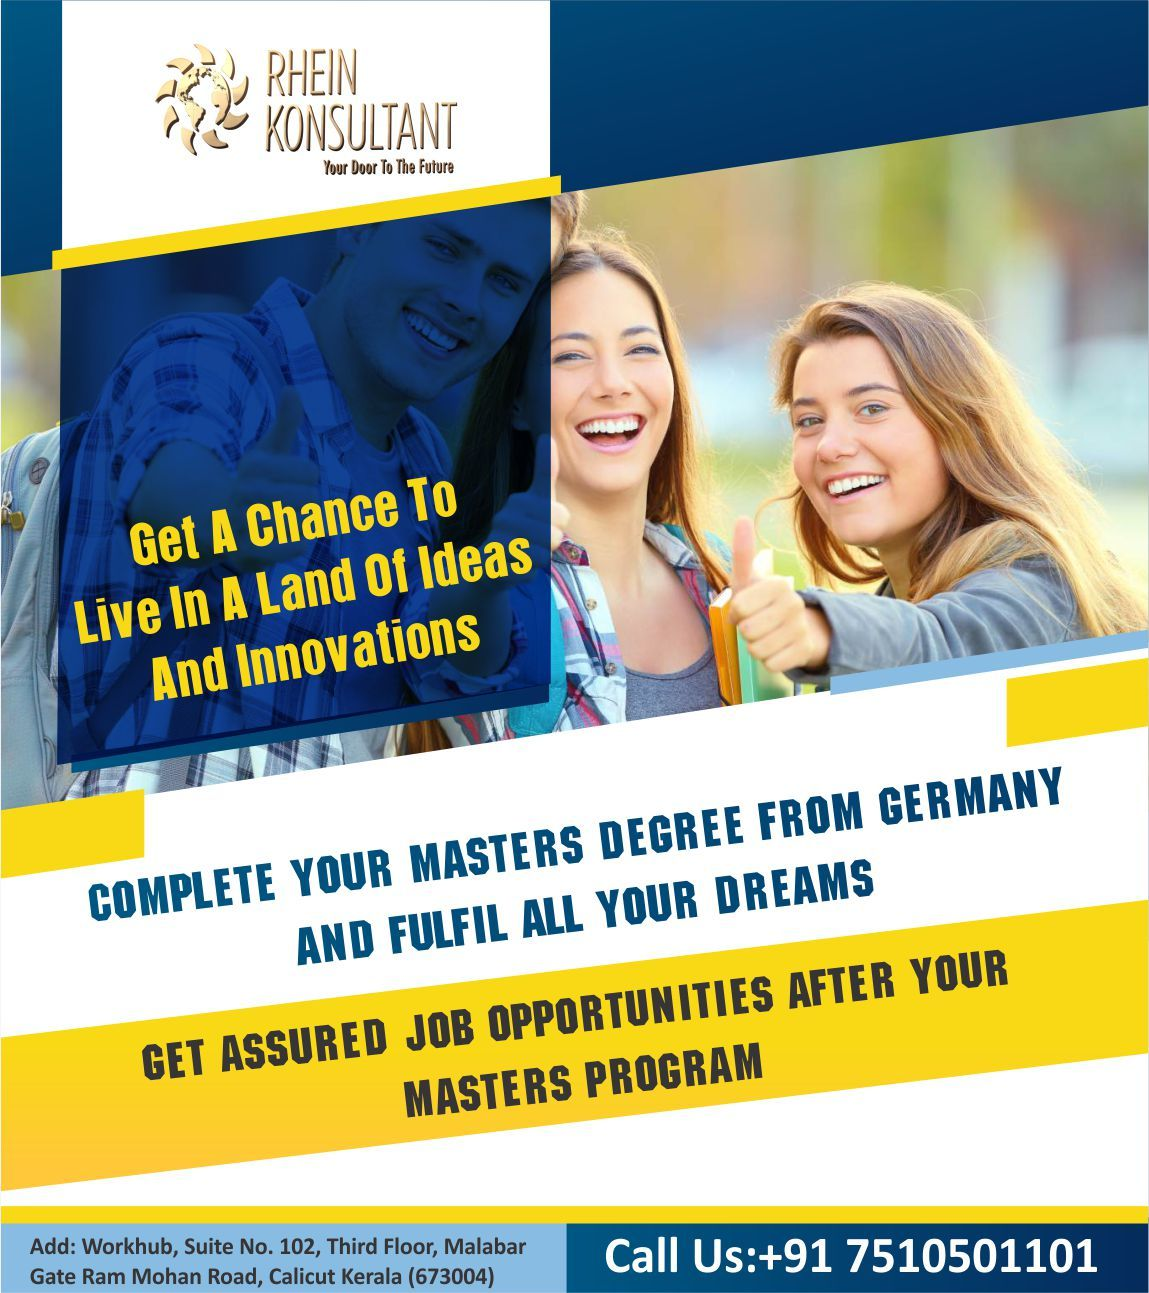 608fba7c90f838b005bb8b5e0adb0da1 - How To Get A Job In Germany After Masters